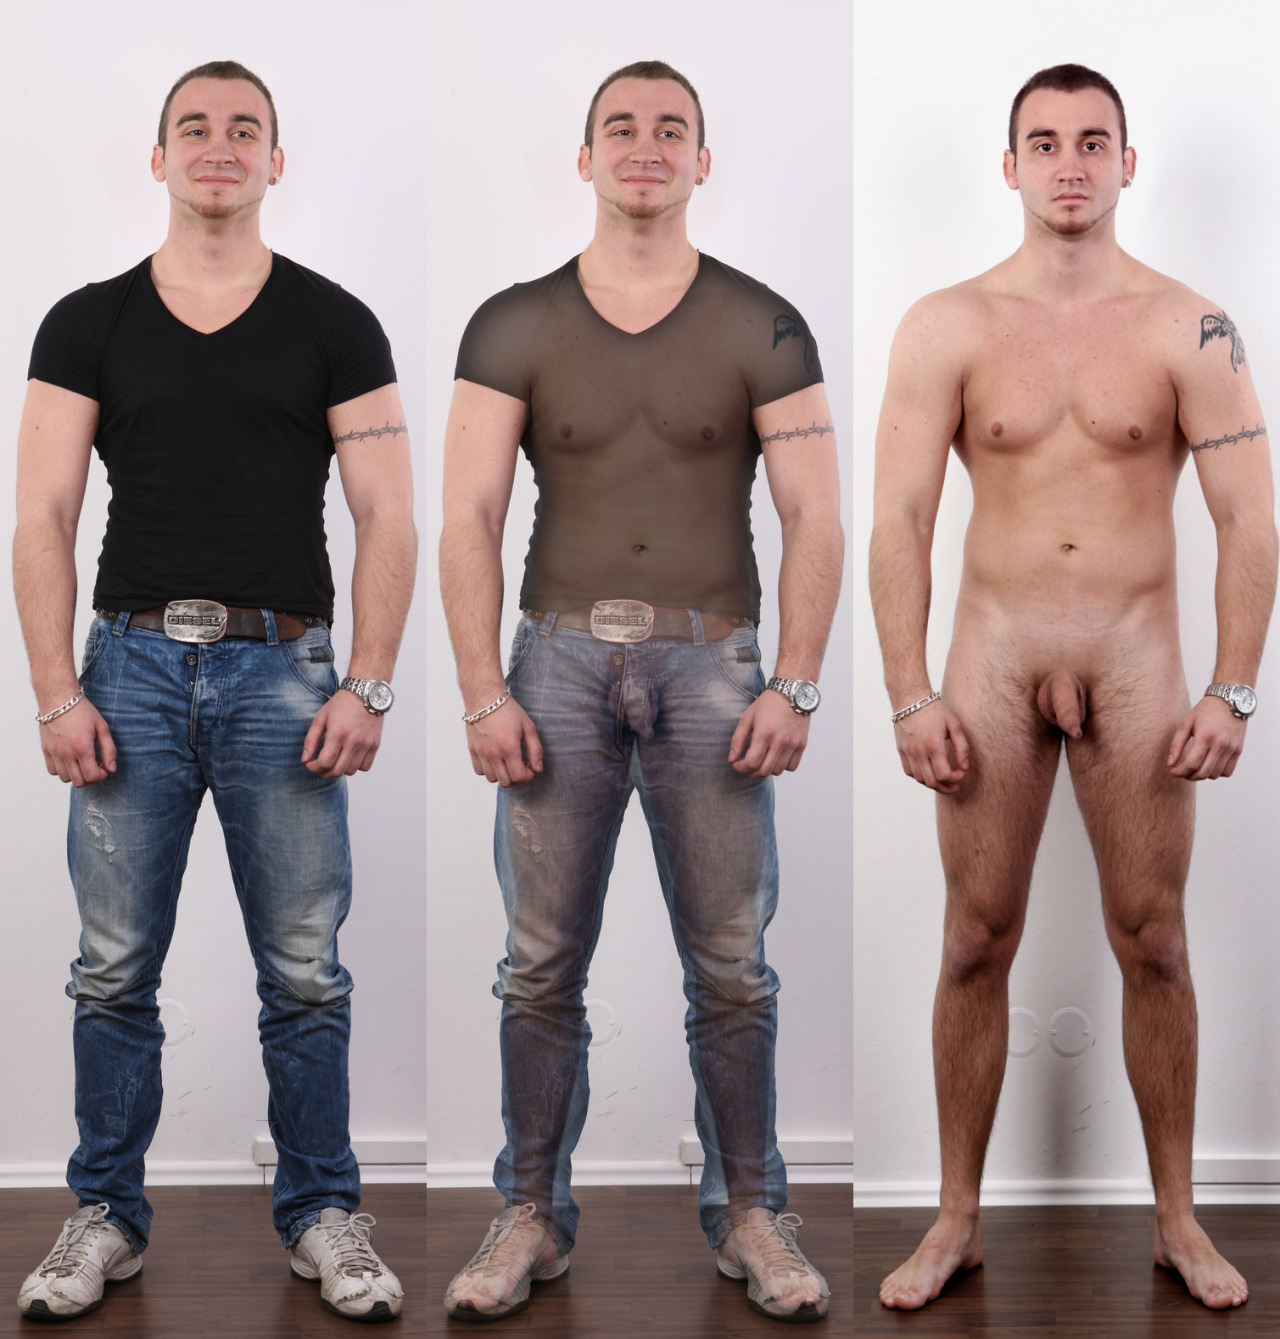 Boys pictures without clothes, hoot milf facking